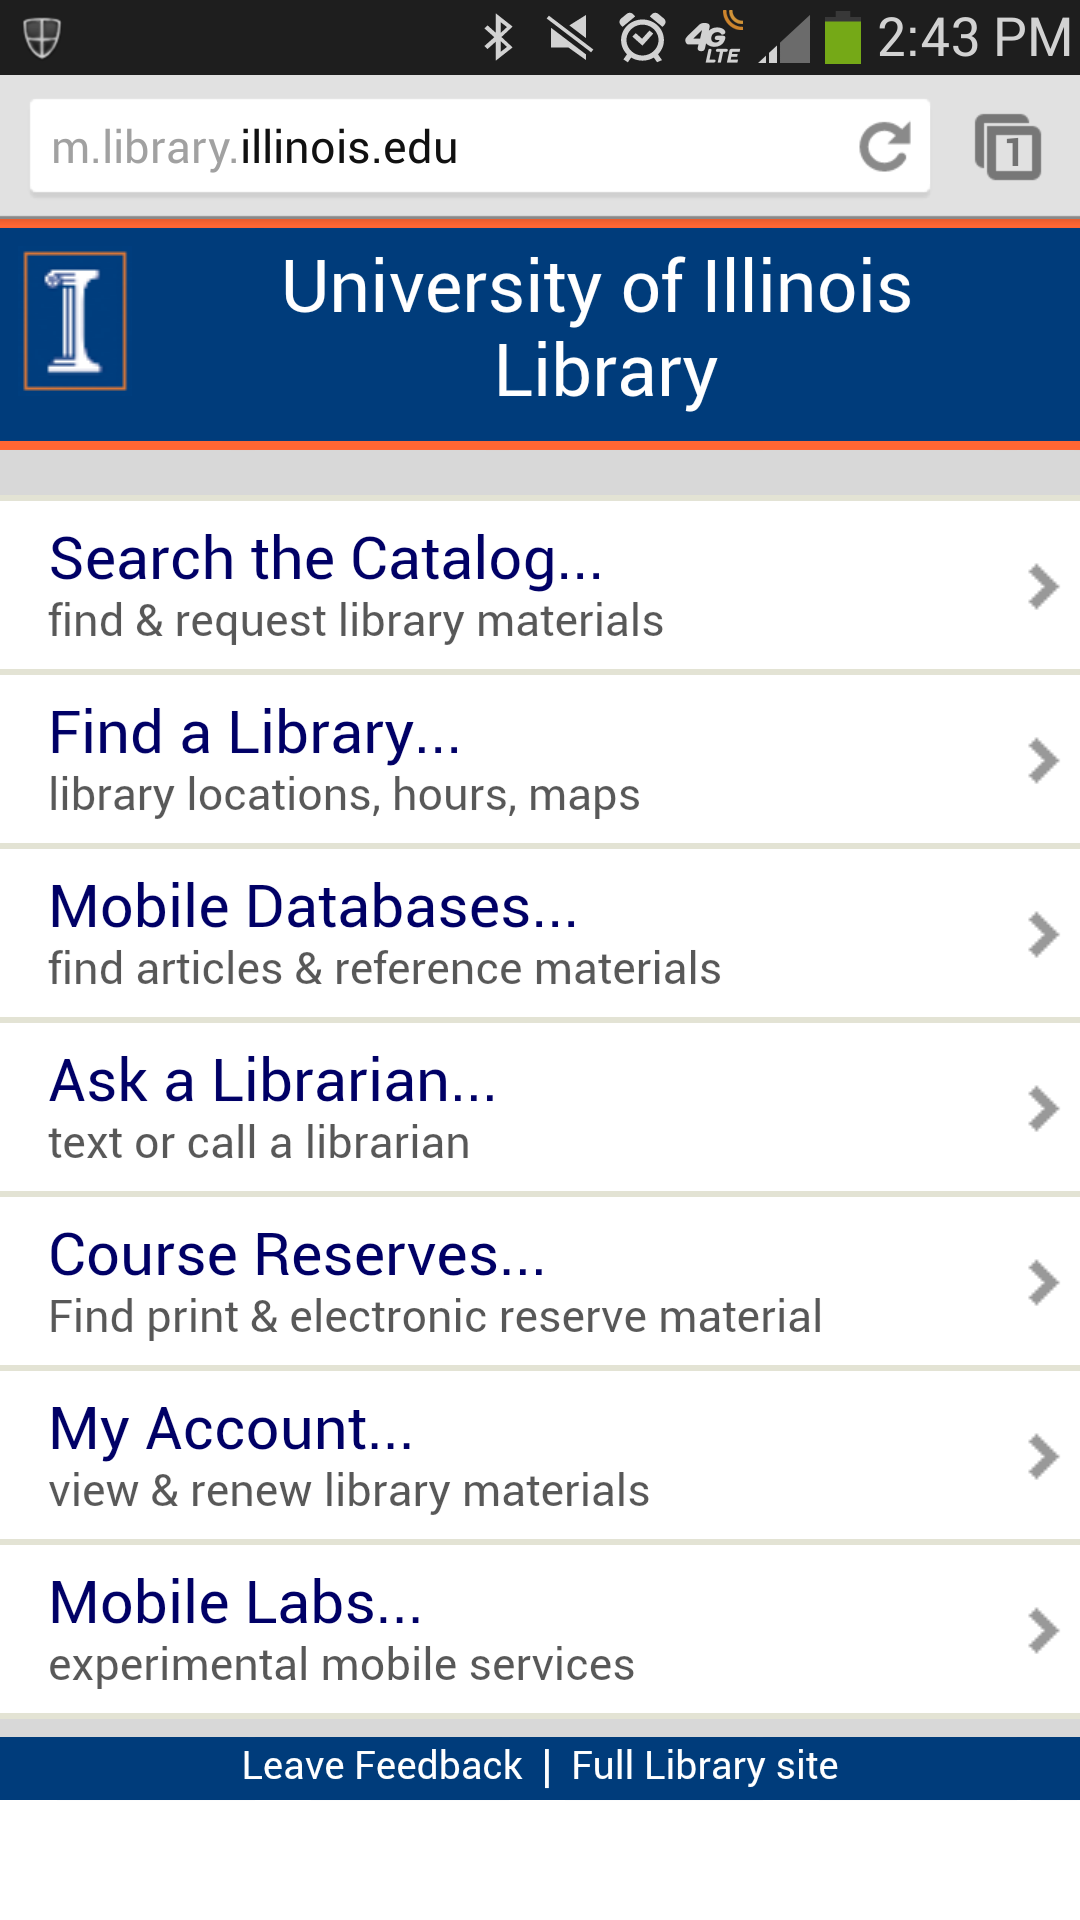 Library's mobile version homepage